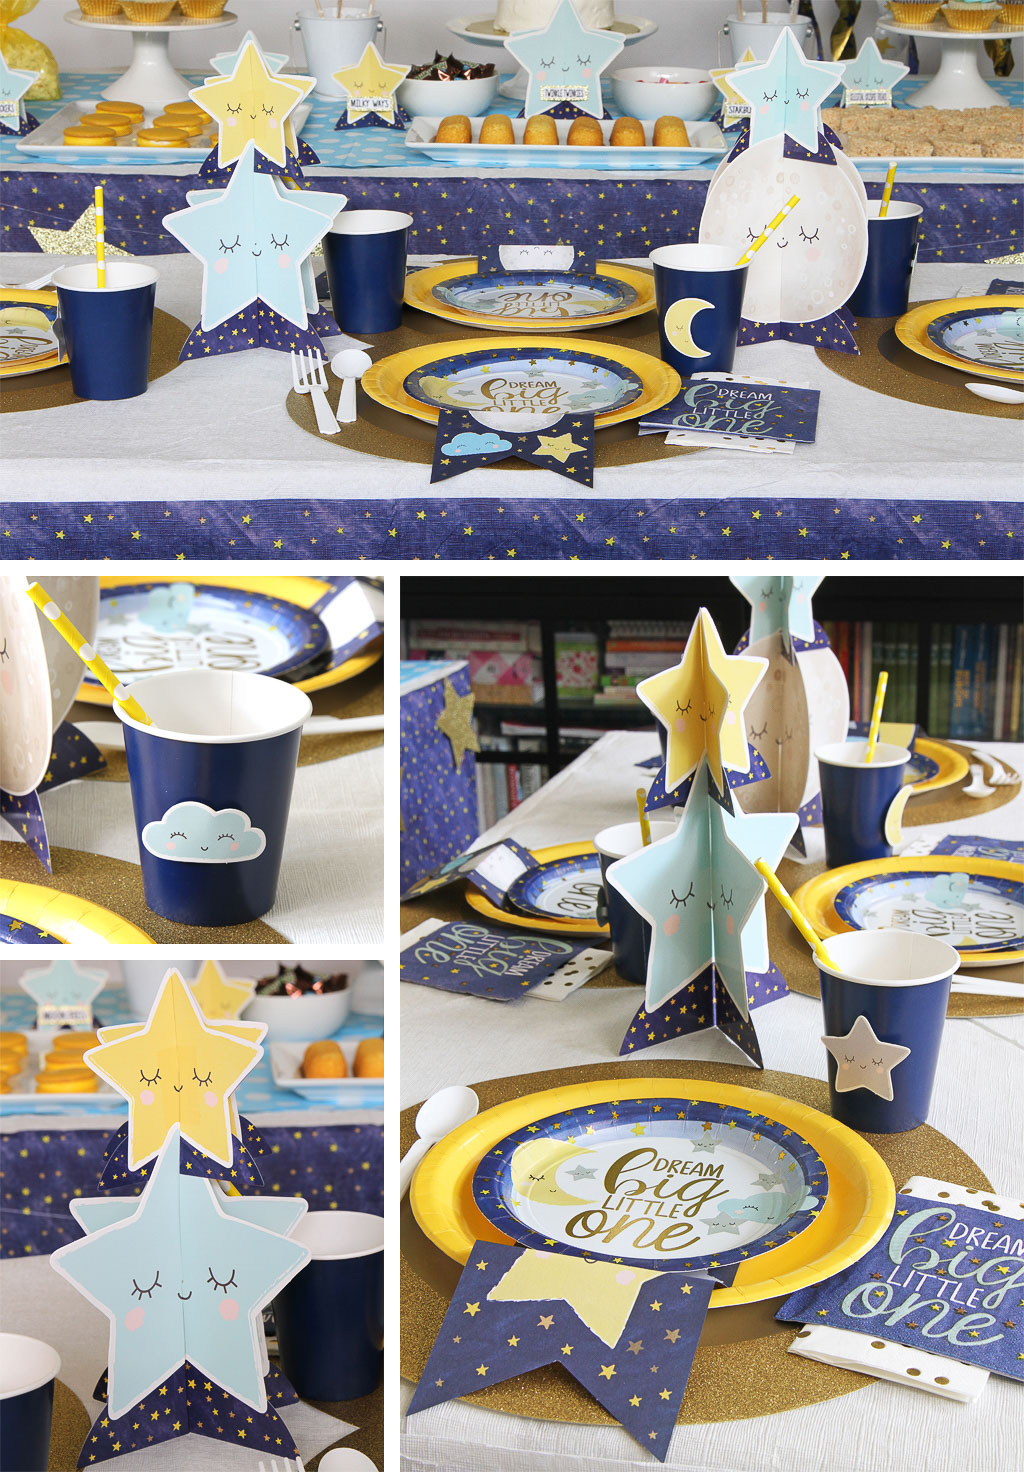 Twinkle First Birthday Place Settings